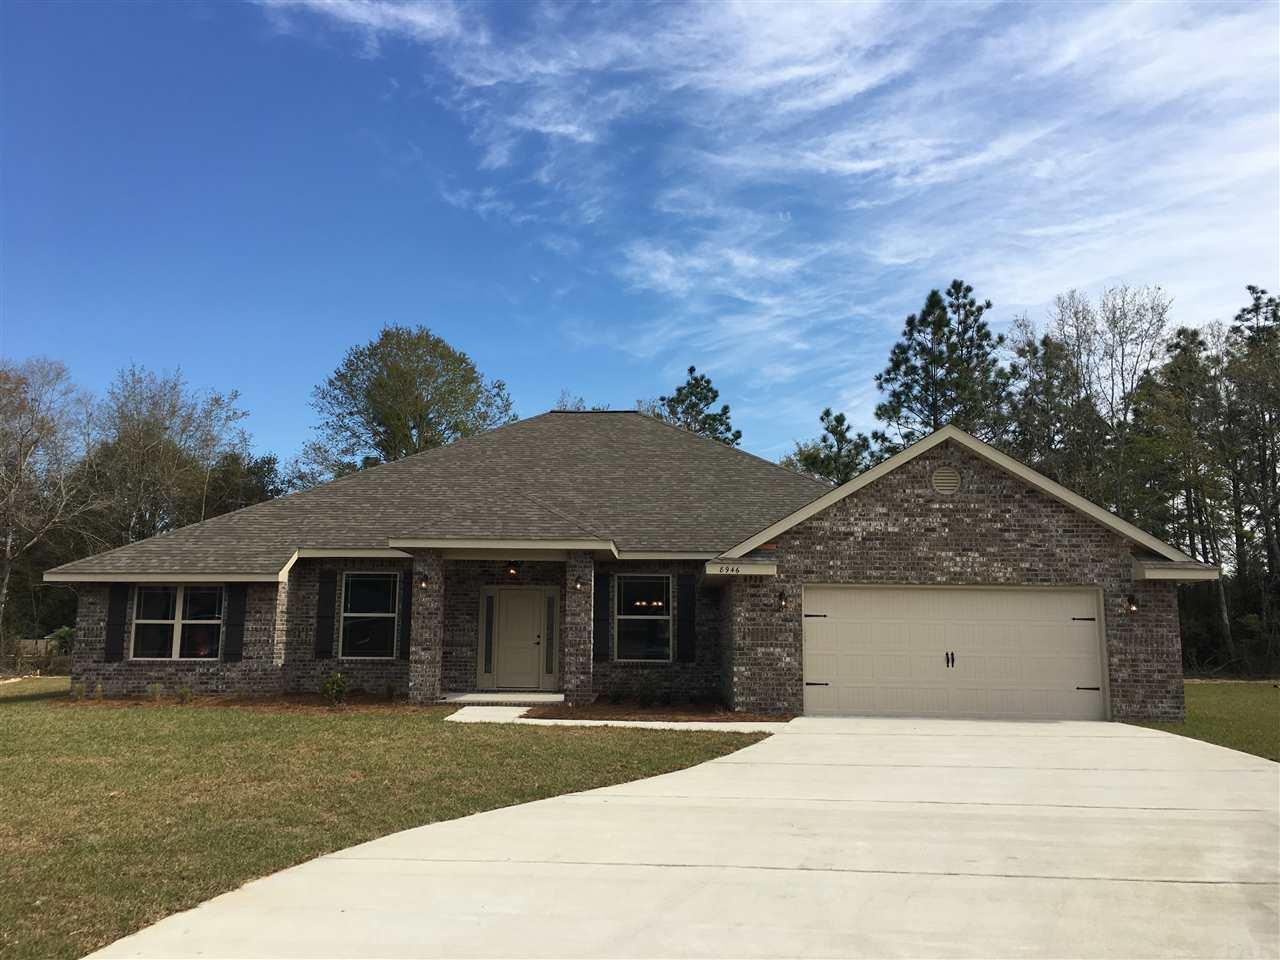 8946 Clearbrook Dr, Milton, FL 32583